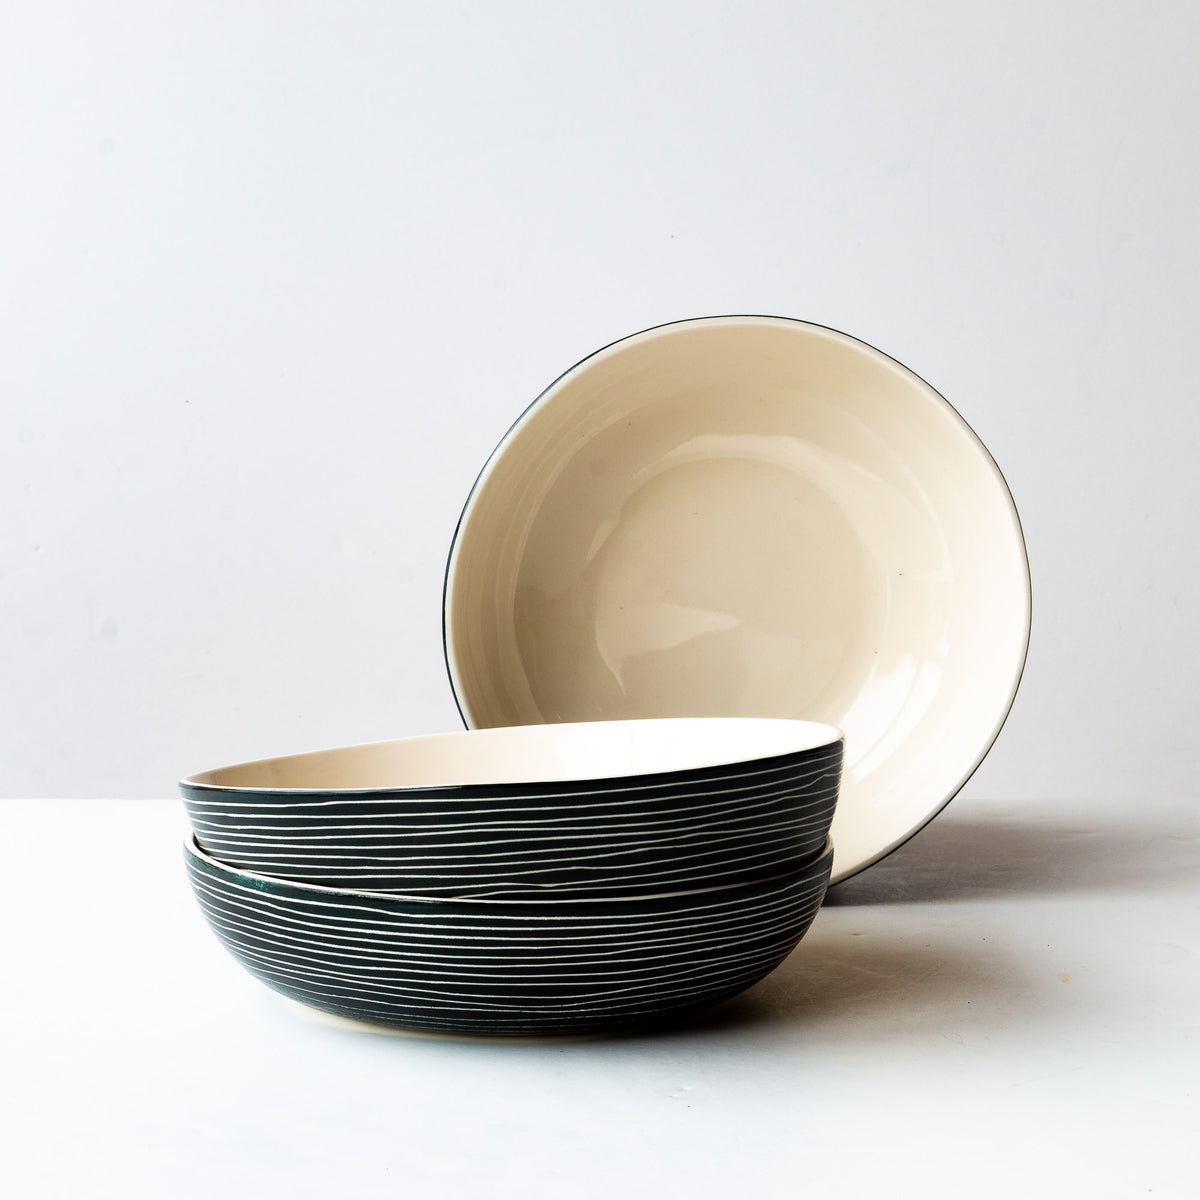 Handmade Porcelain Pasta / Salad Bowl With Stripes - Sold by Chic & Basta